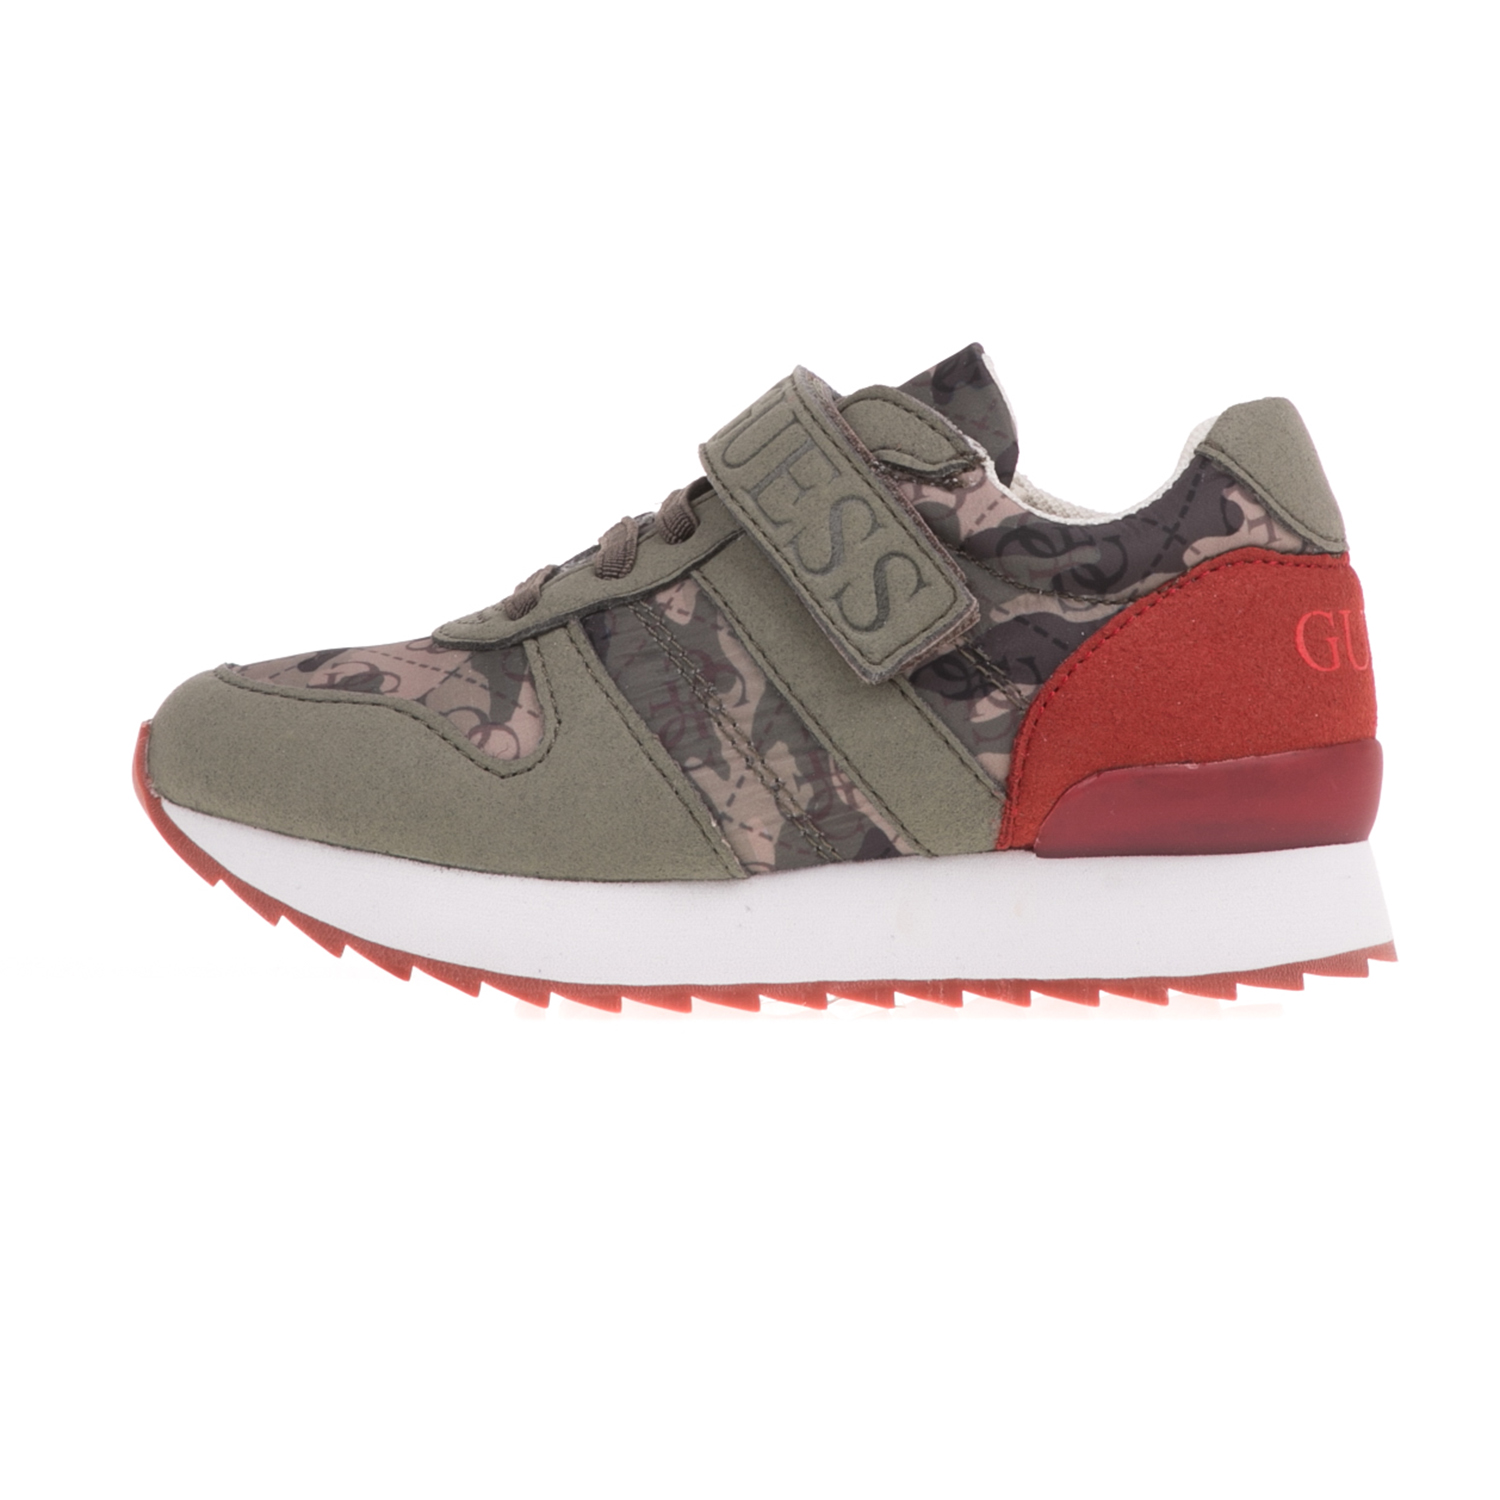 92daf707855 -49% Factory Outlet GUESS KIDS – Αγορίστικα sneakers GUESS KIDS RUDY χακί